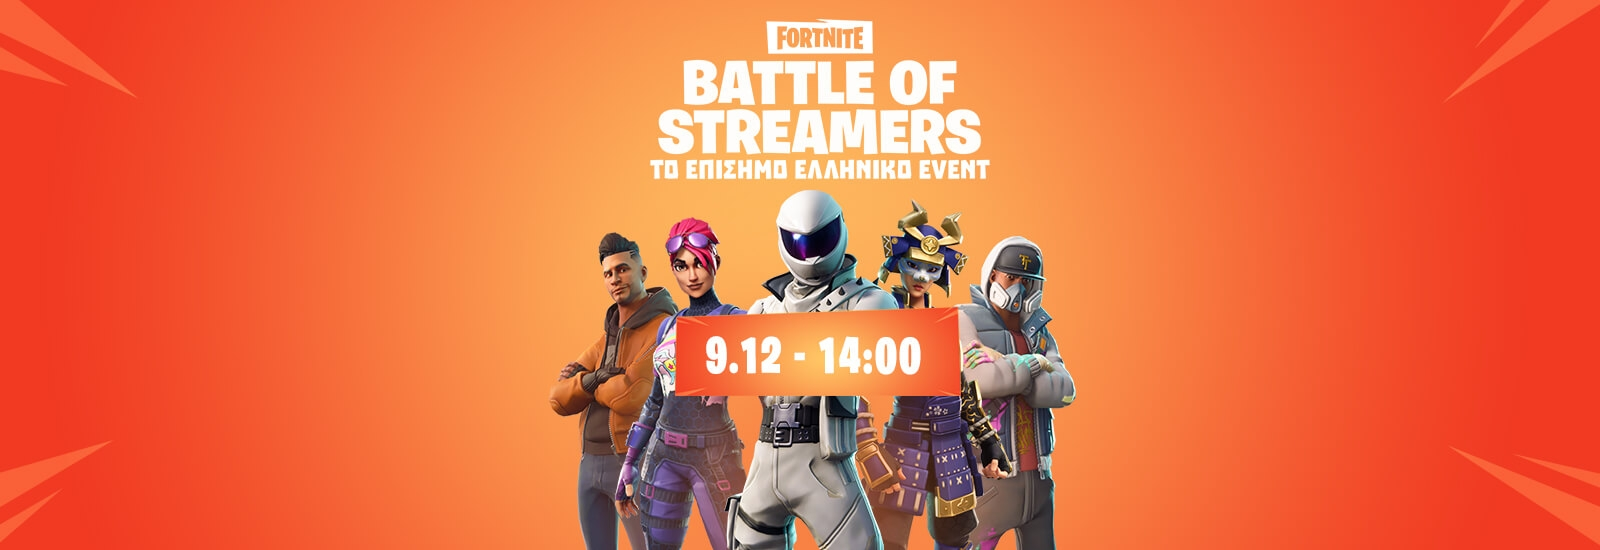 Fortnite Battle of Streamers @ BNB Glyfada 9/12/18